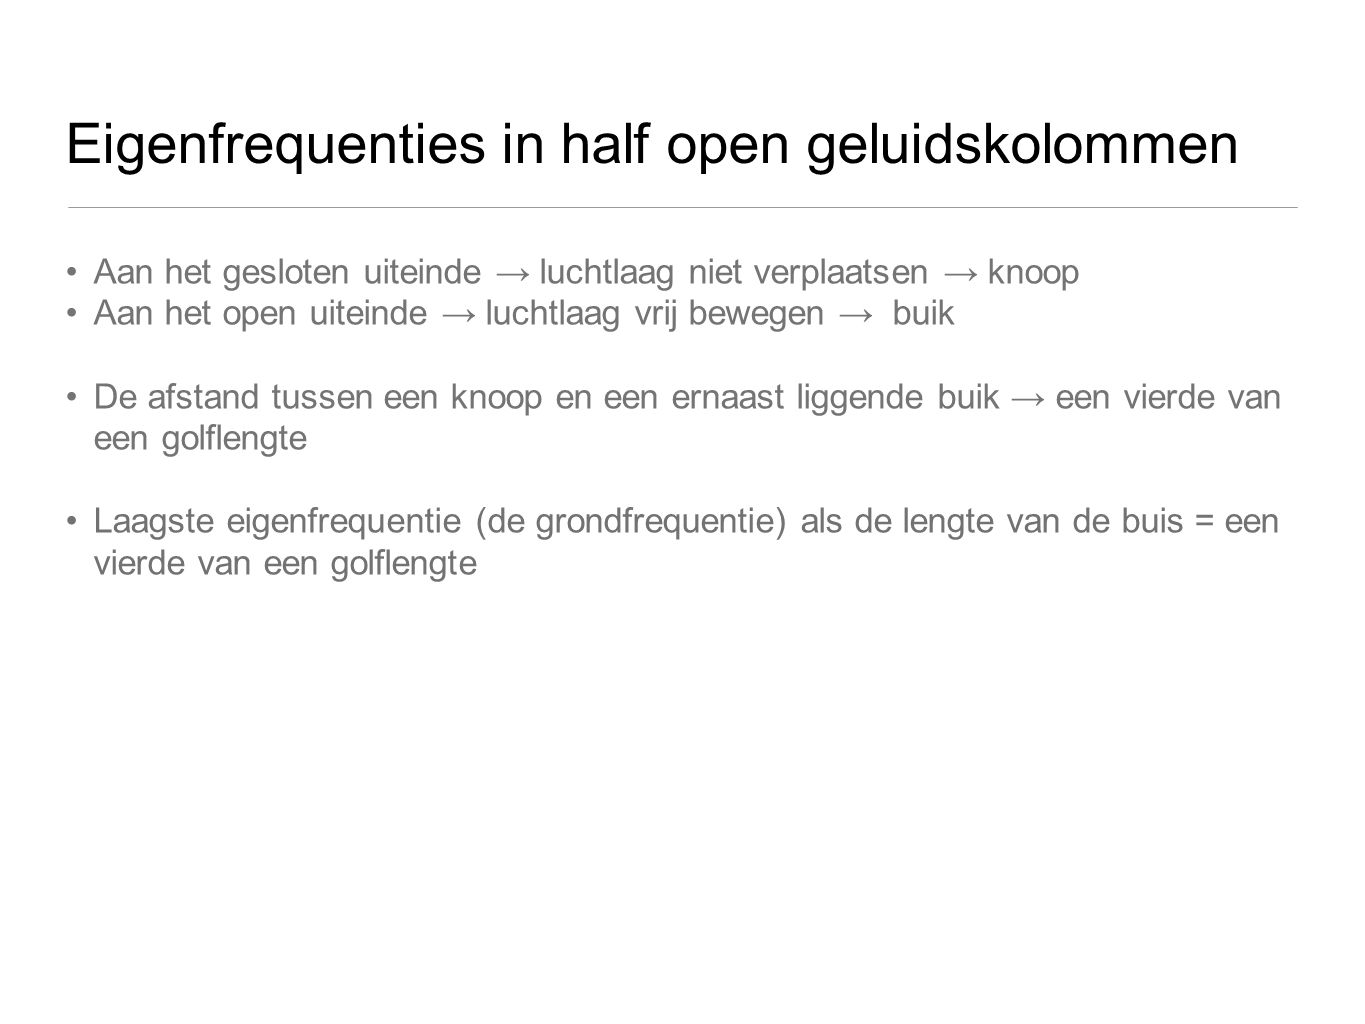 Eigenfrequenties in half open geluidskolommen